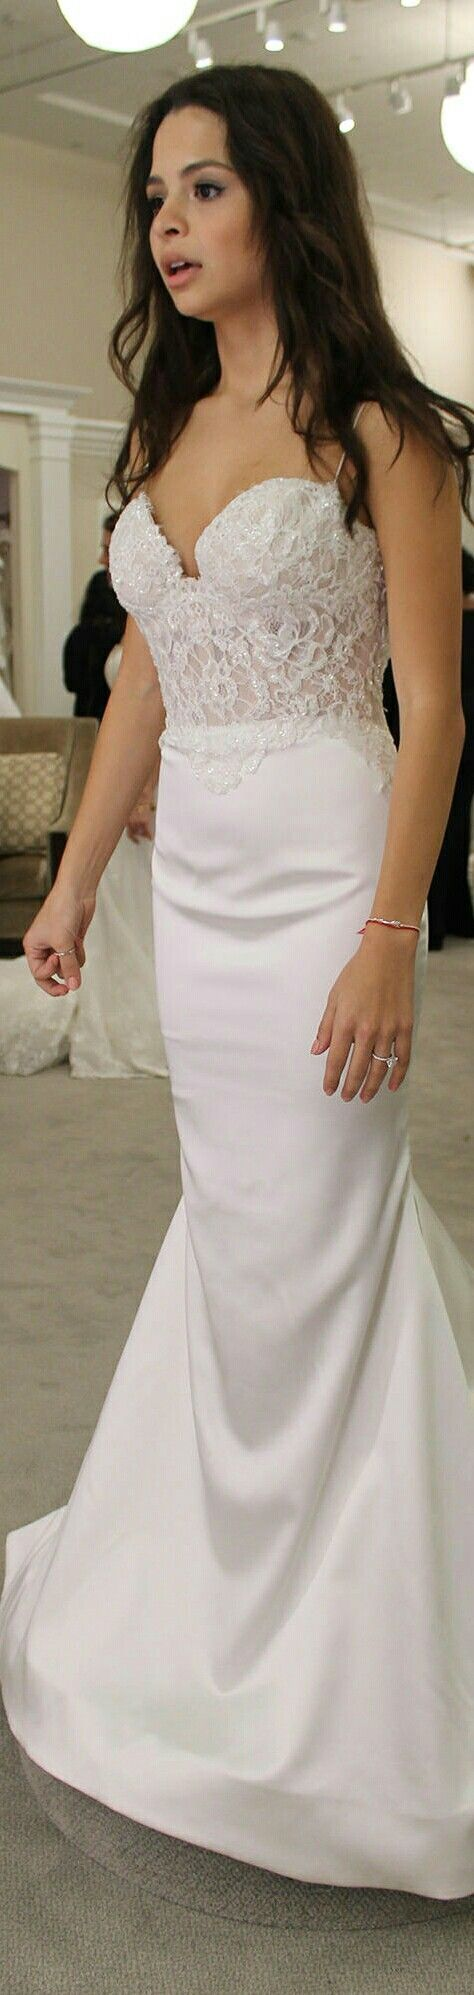 """Sasha Clements is Trying on a Wedding Dress for Season 14 - """"The Dress"""" - [TLC];April 6, 2016."""